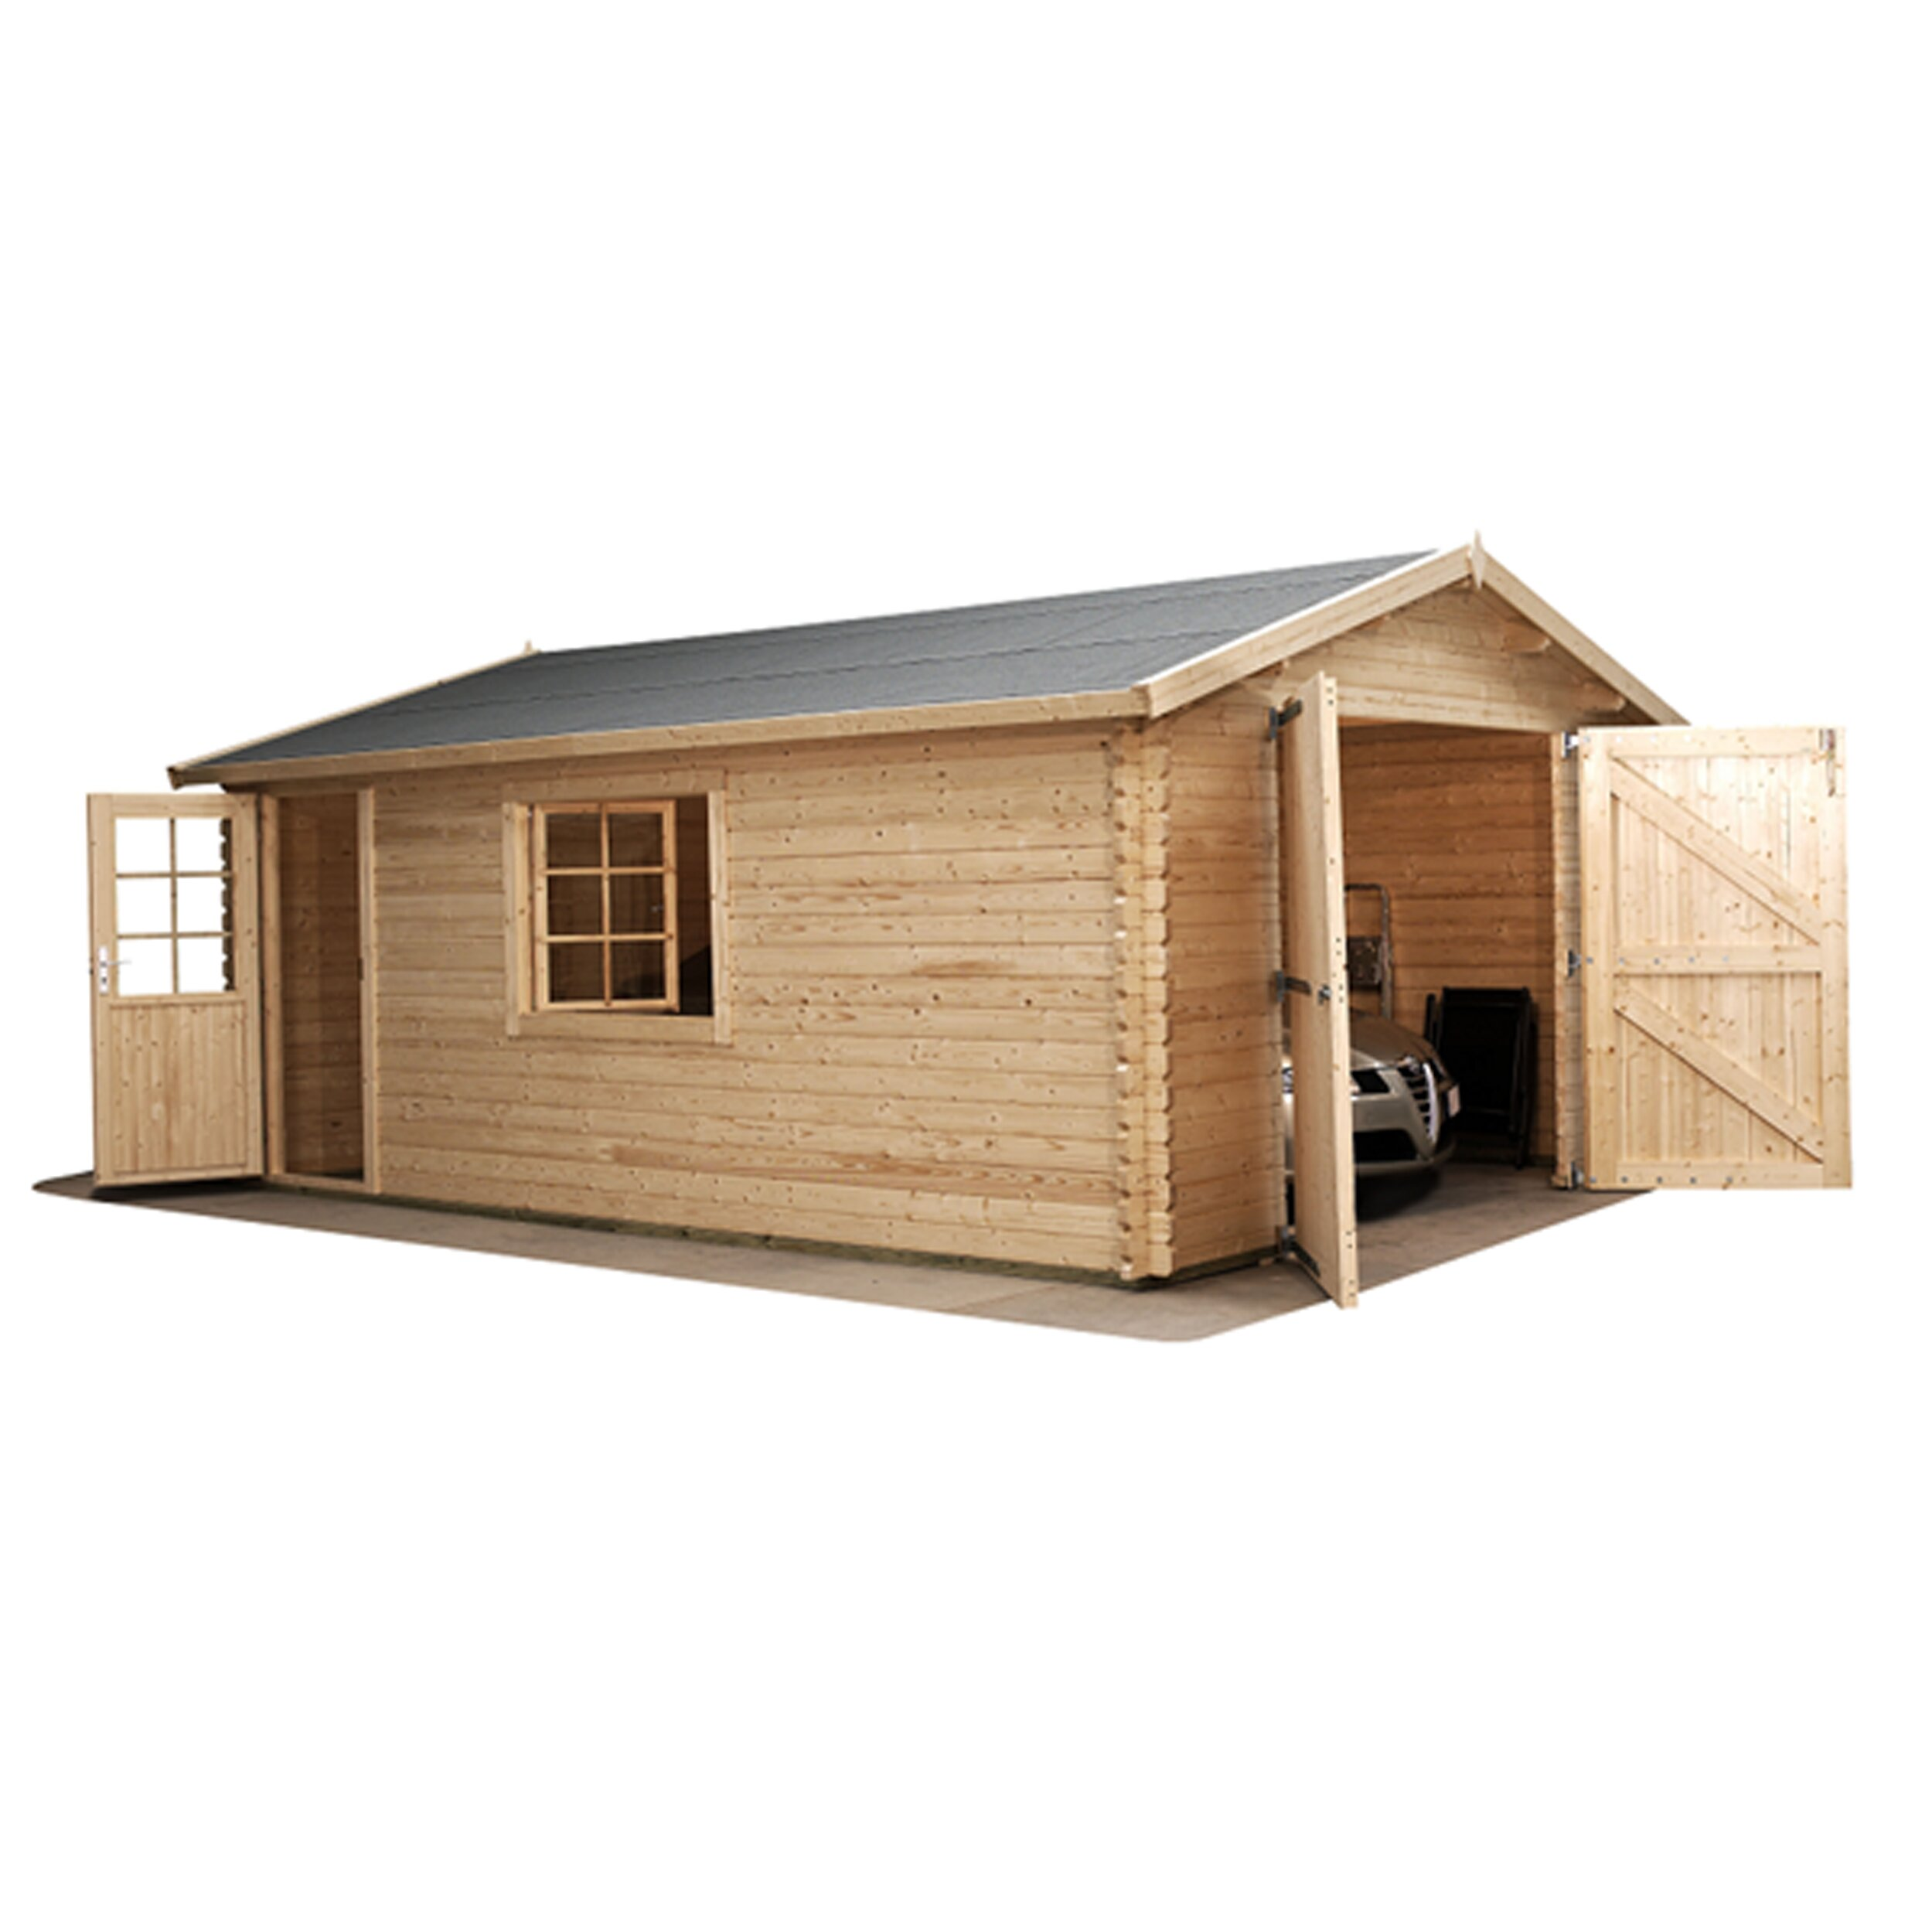 Trampoline Sale 55 8 11 12 13 14 15 17 X15 Oval: Mercia Garden Products 14 X 19 Wooden Garage Shed